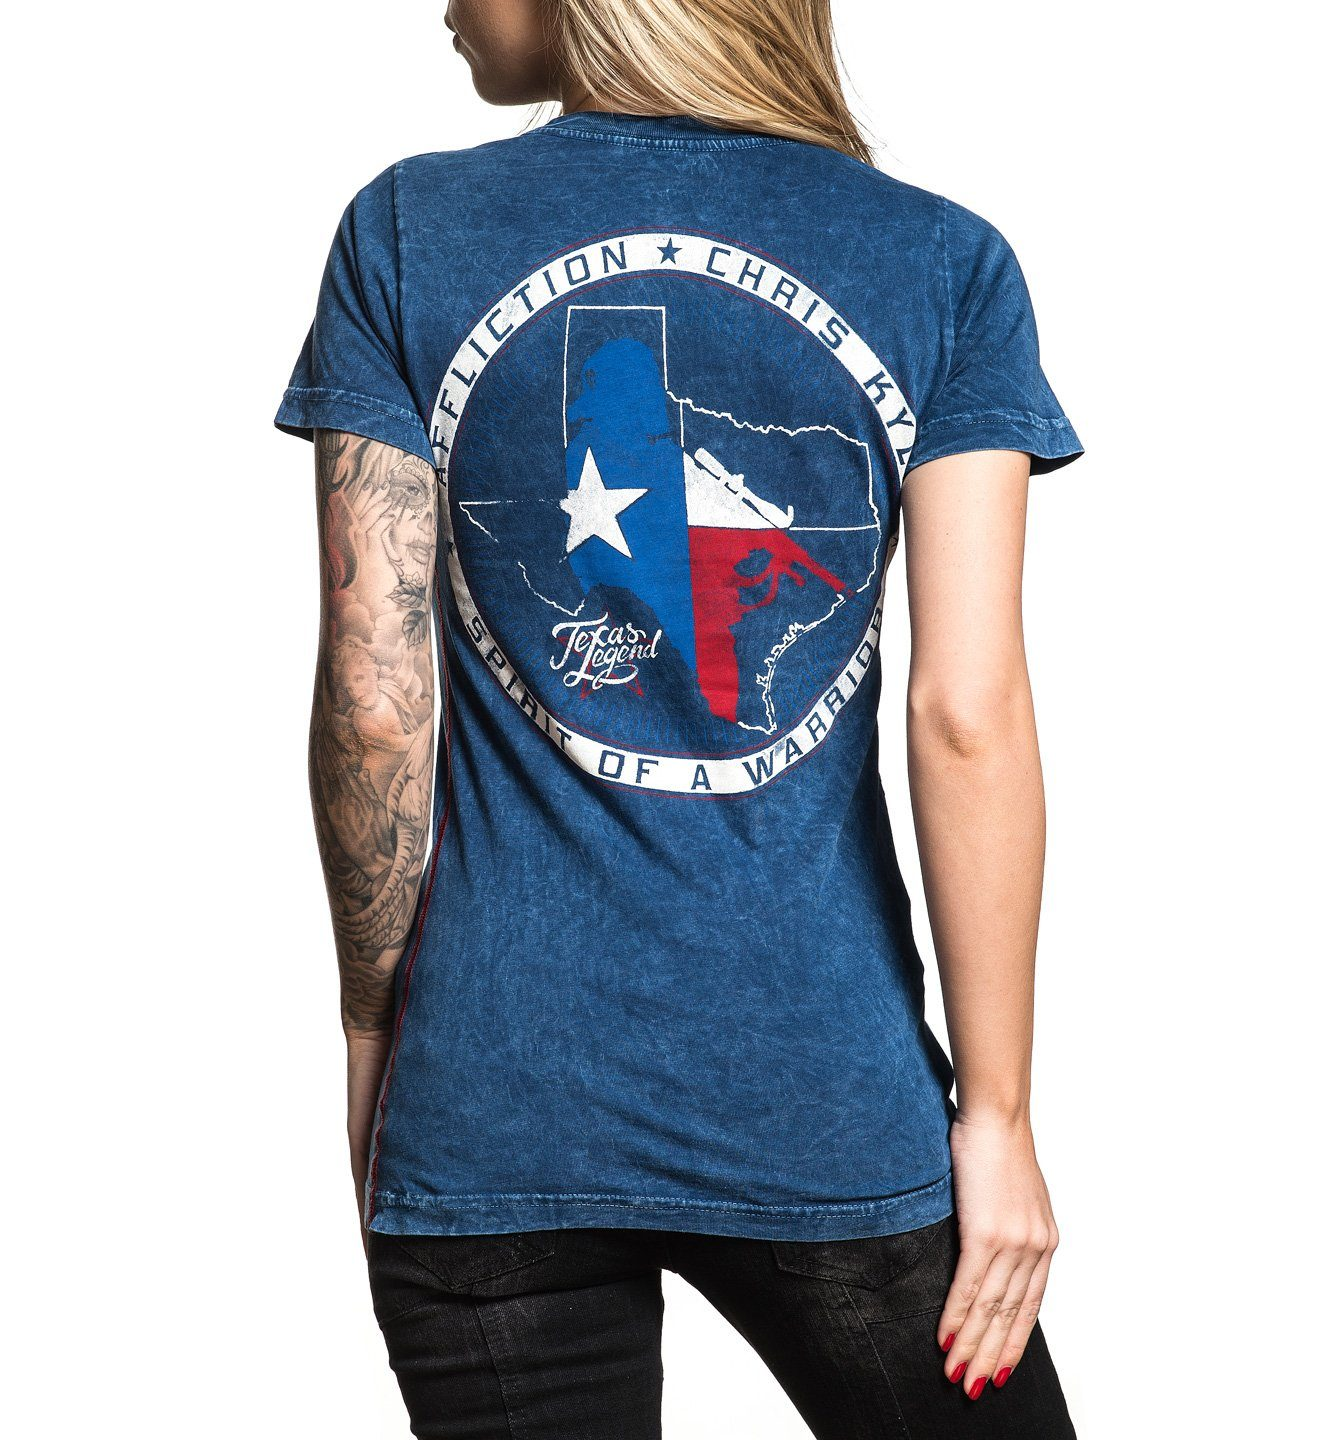 CK Texas Legend - Womens Short Sleeve Tees - Affliction Clothing